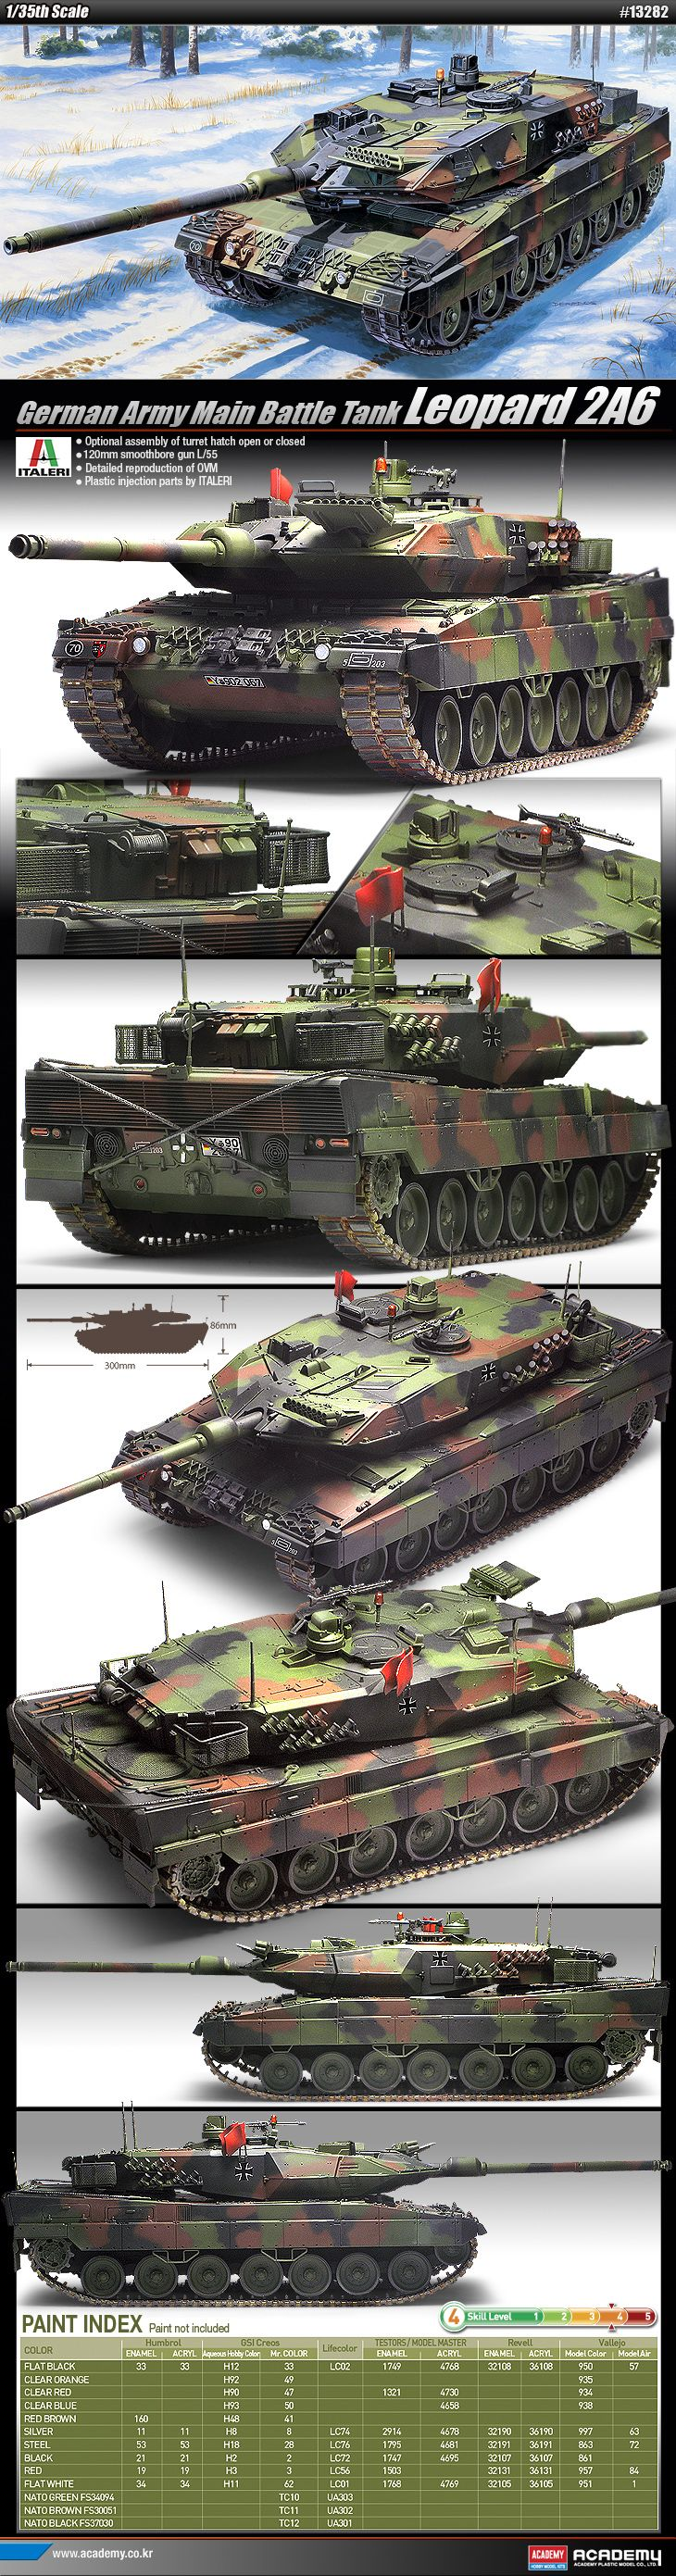 german mbt revolution model kit | ... Plastic Model Kits 1/35 LEOPARD 2A6 German Army MBT Battel Tank #13282